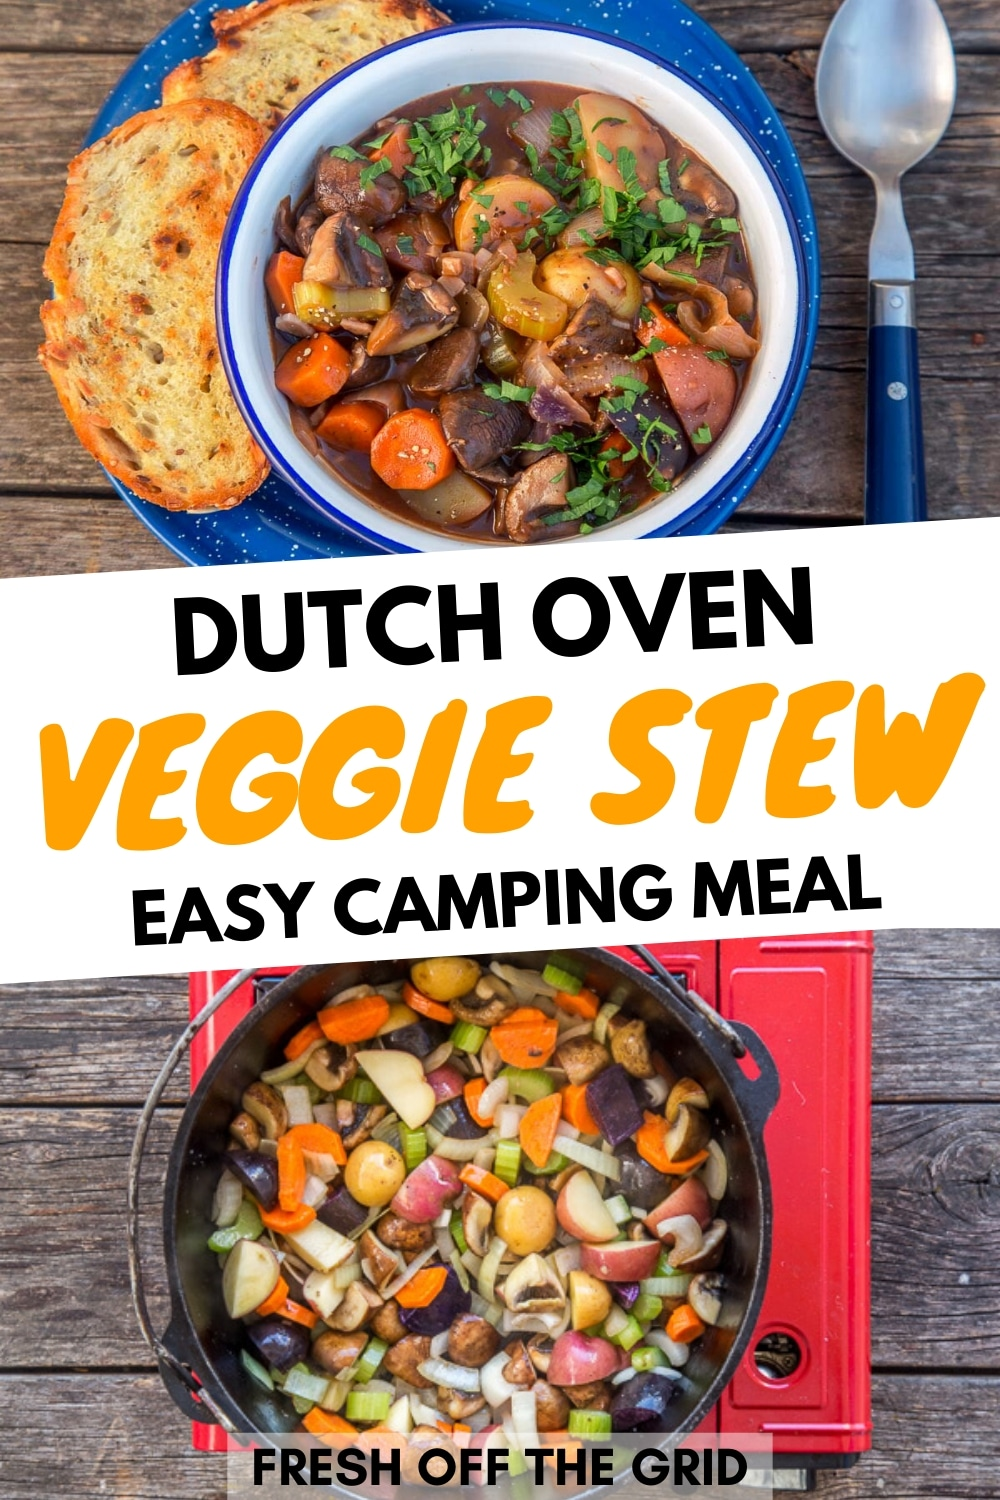 This Vegetable Stew is an awesome Dutch oven camping meal that is hearty and full of flavors. Campfire cooking | camping food via @freshoffthegrid